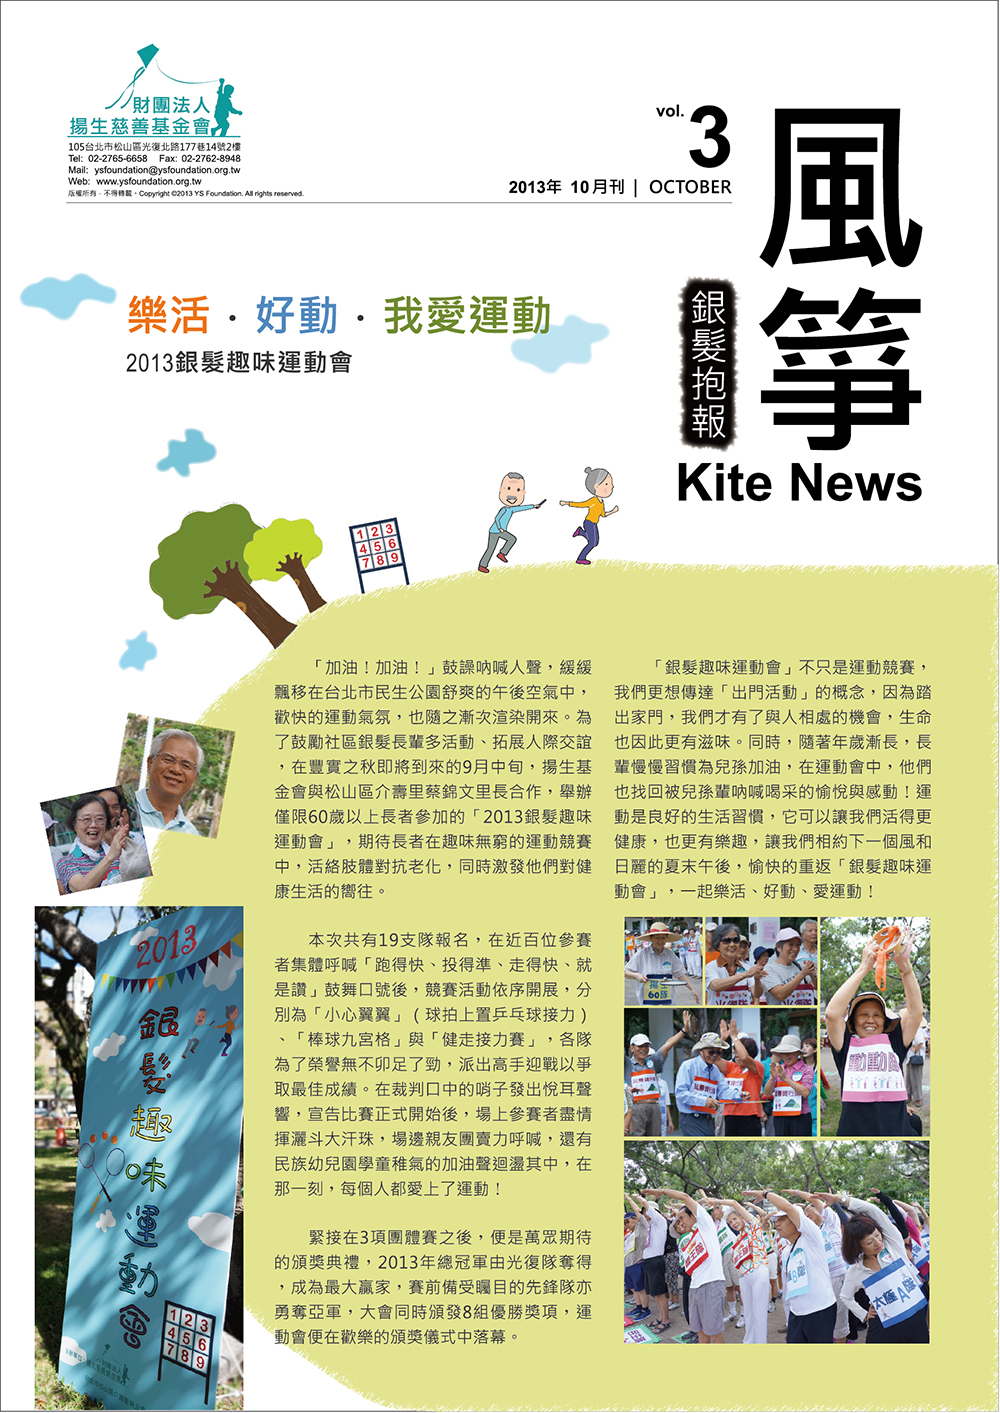 kite news_vol.3_1.jpg